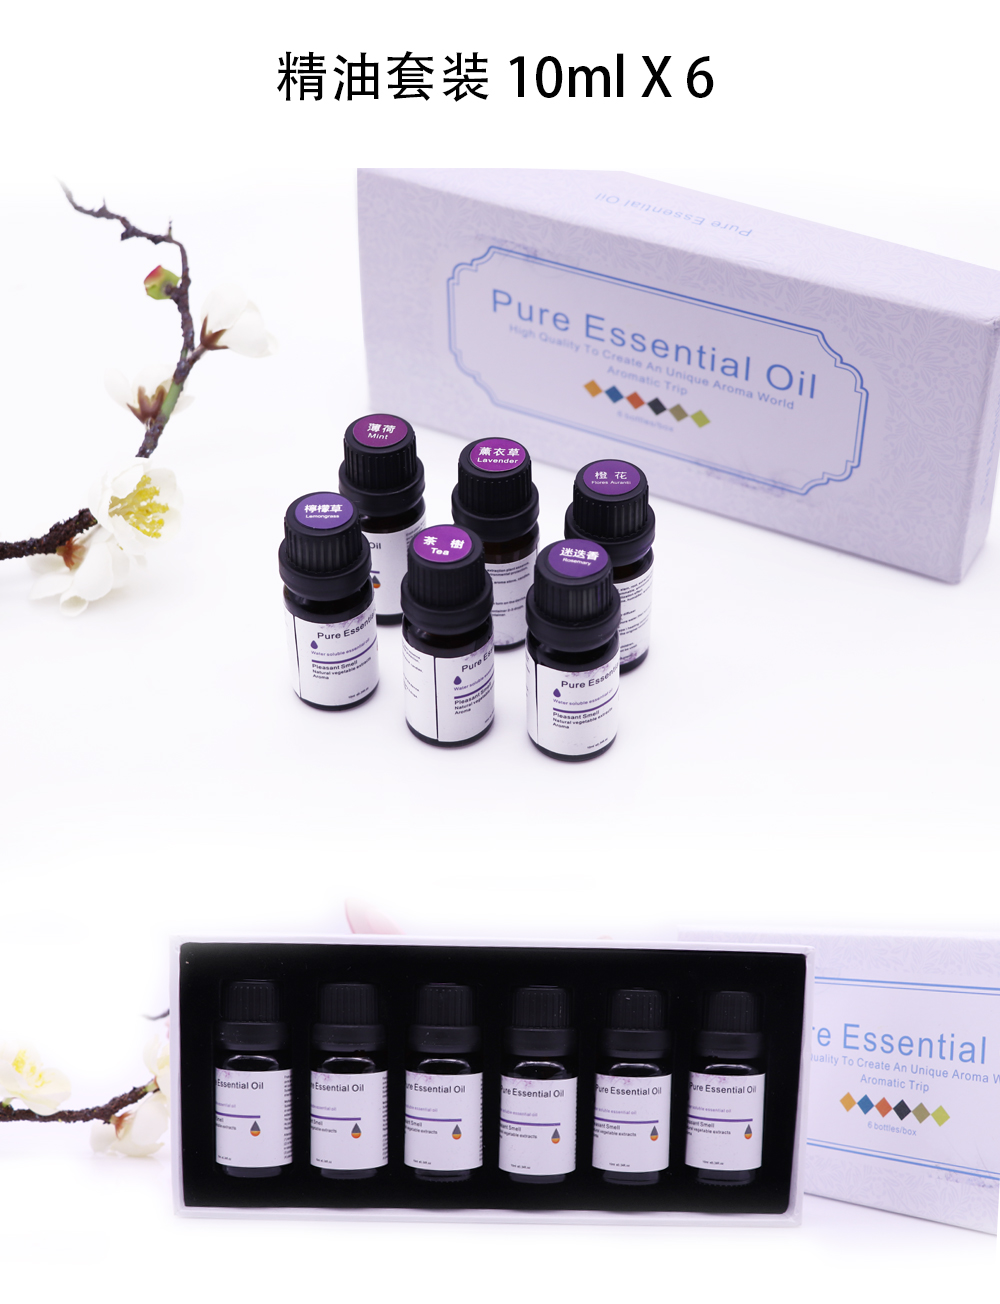 Natural Essential Oils ,100% Pure Aromatherapy Diffuser Oils with Lavender, Tea Tree, Eucalyptus, Lemon